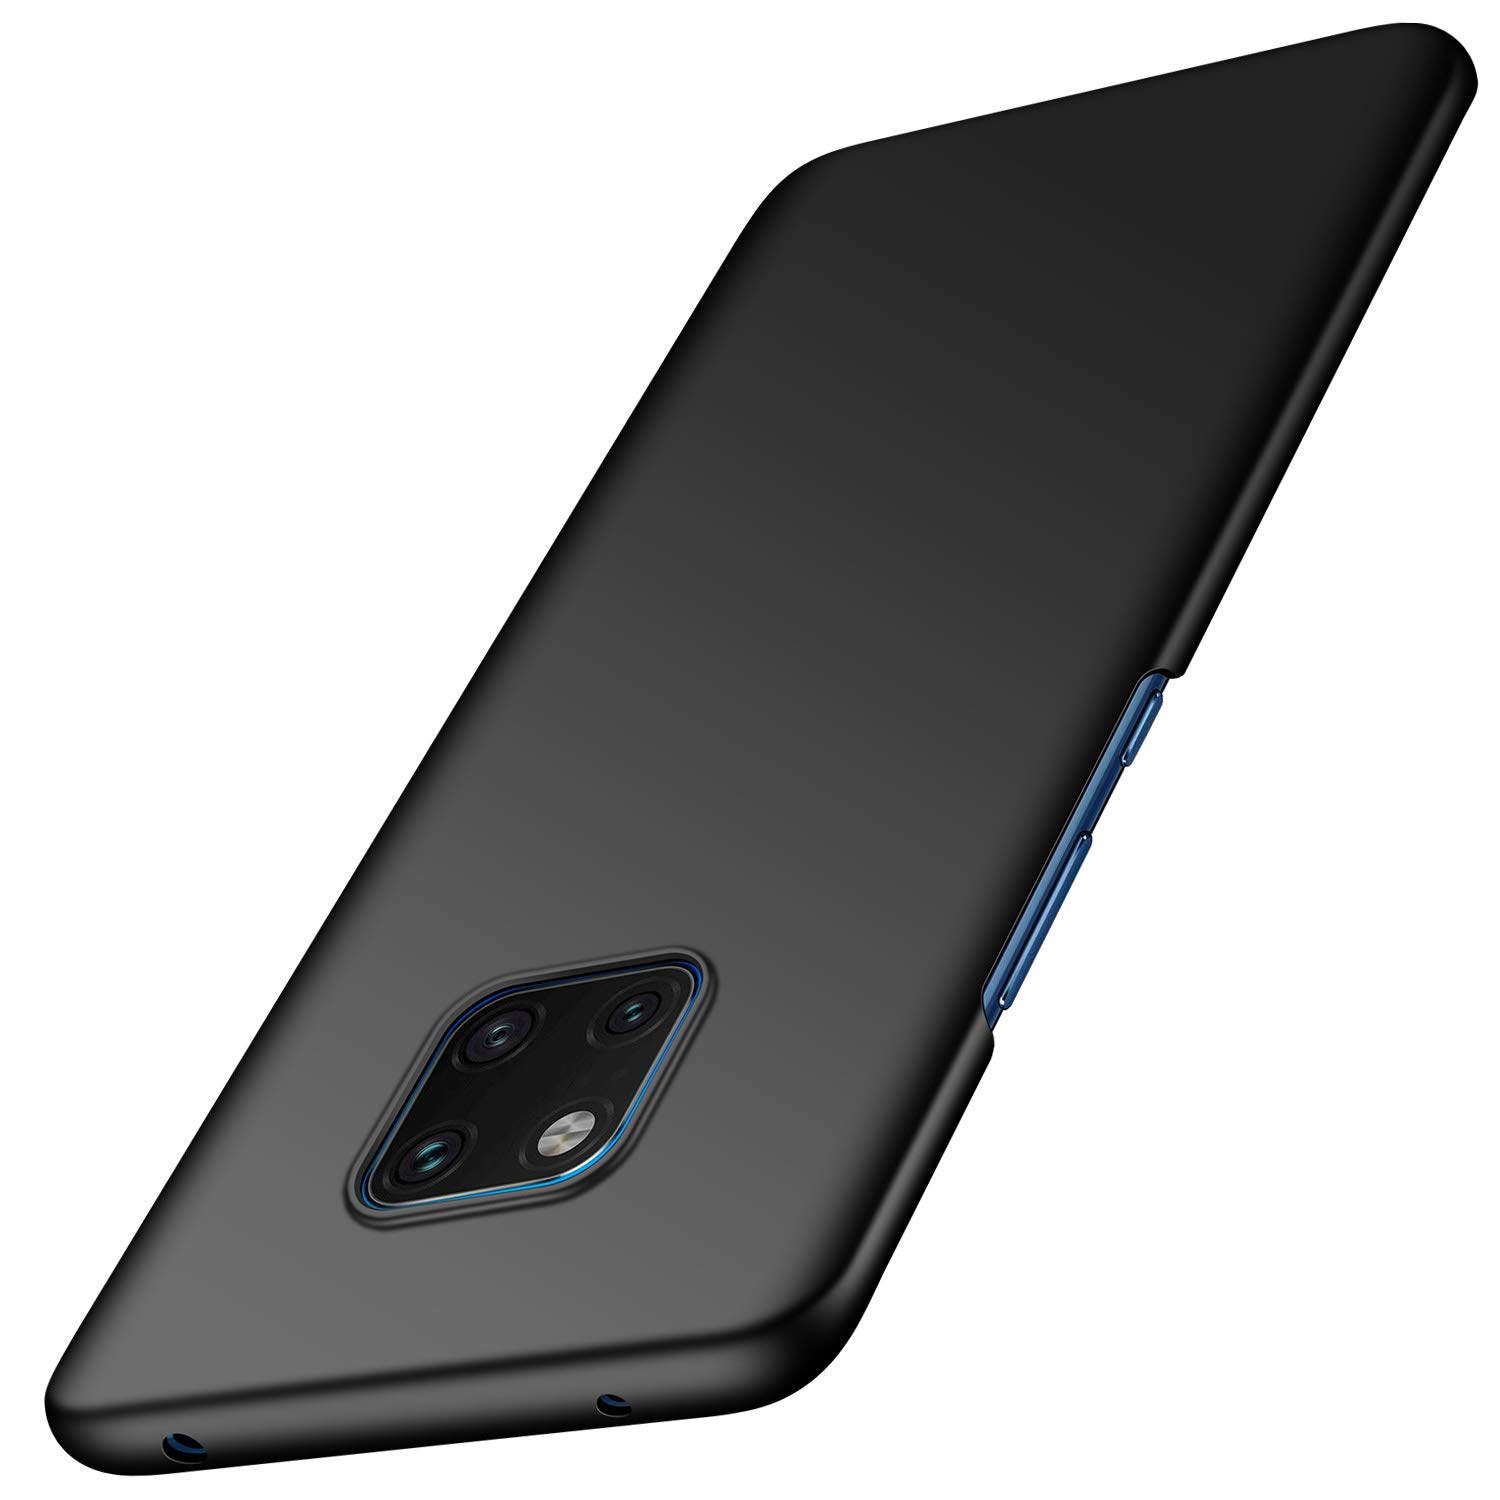 Huawei Mate 20 Pro Case, Arkour Minimalist Ultra Thin Slim Fit Cover with Smooth Matte Surface Hard Case for Huawei Mate 20 Pro (Smooth Black)